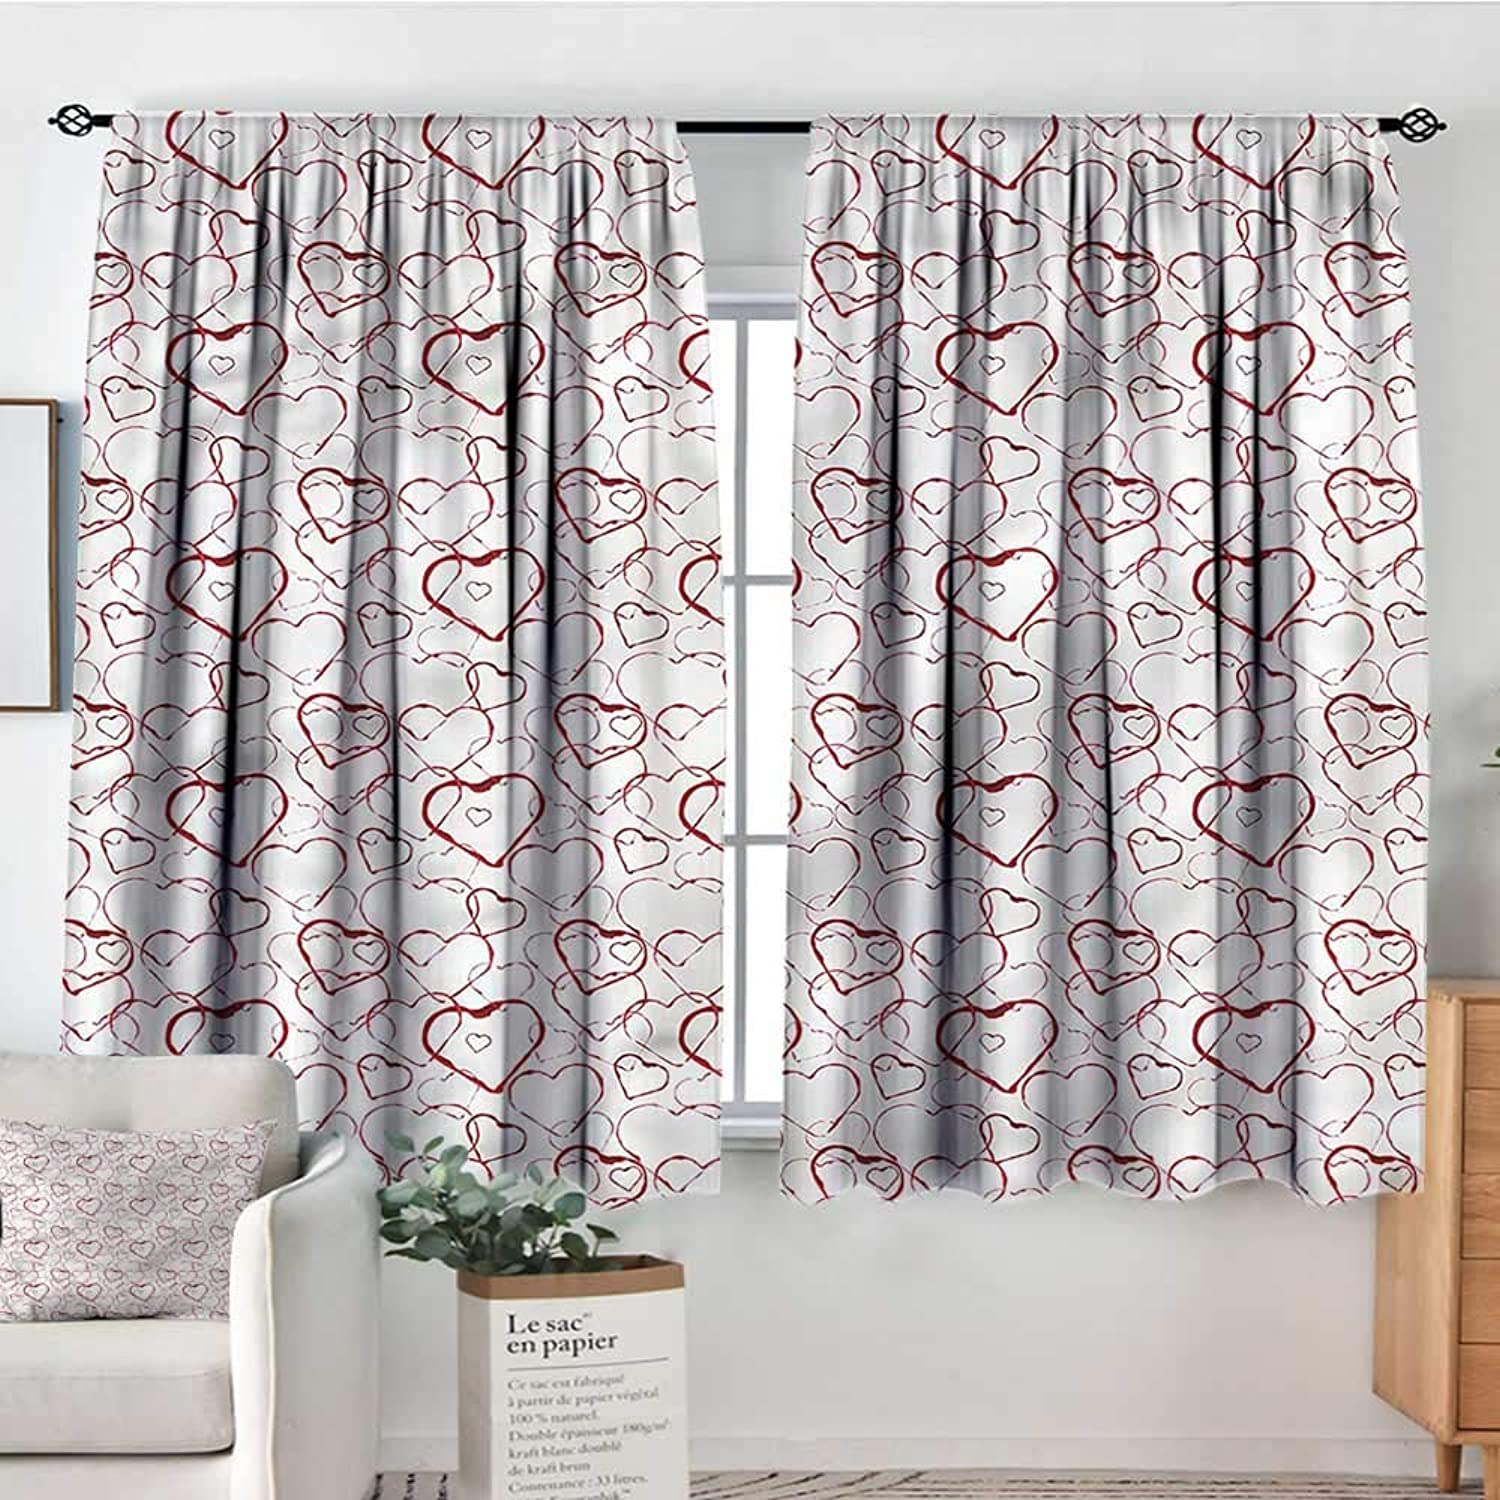 Sanring Hearts,Indo Shades Jumbled Design Contour Forms 52 x63  Patterned Drape for Gass Door